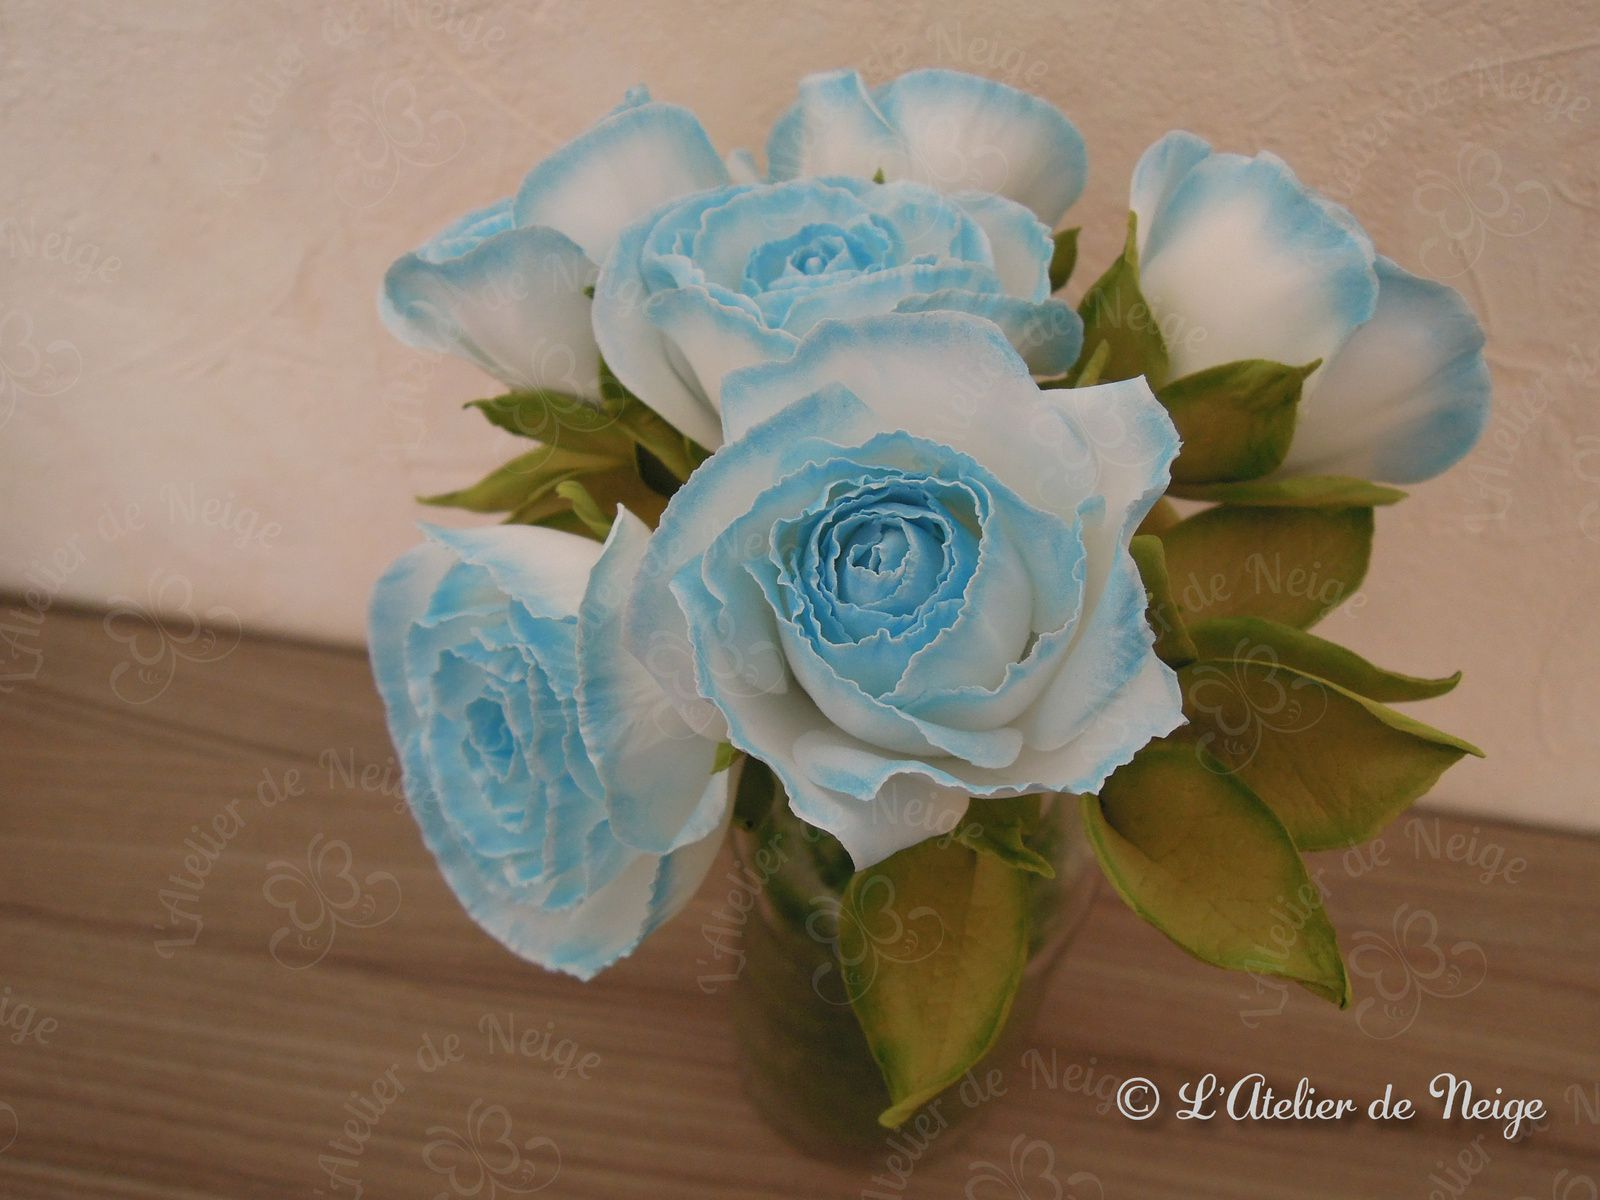 058 - Bouquet de Roses Bleues et Blanches Communion Alice 11 avril 2021